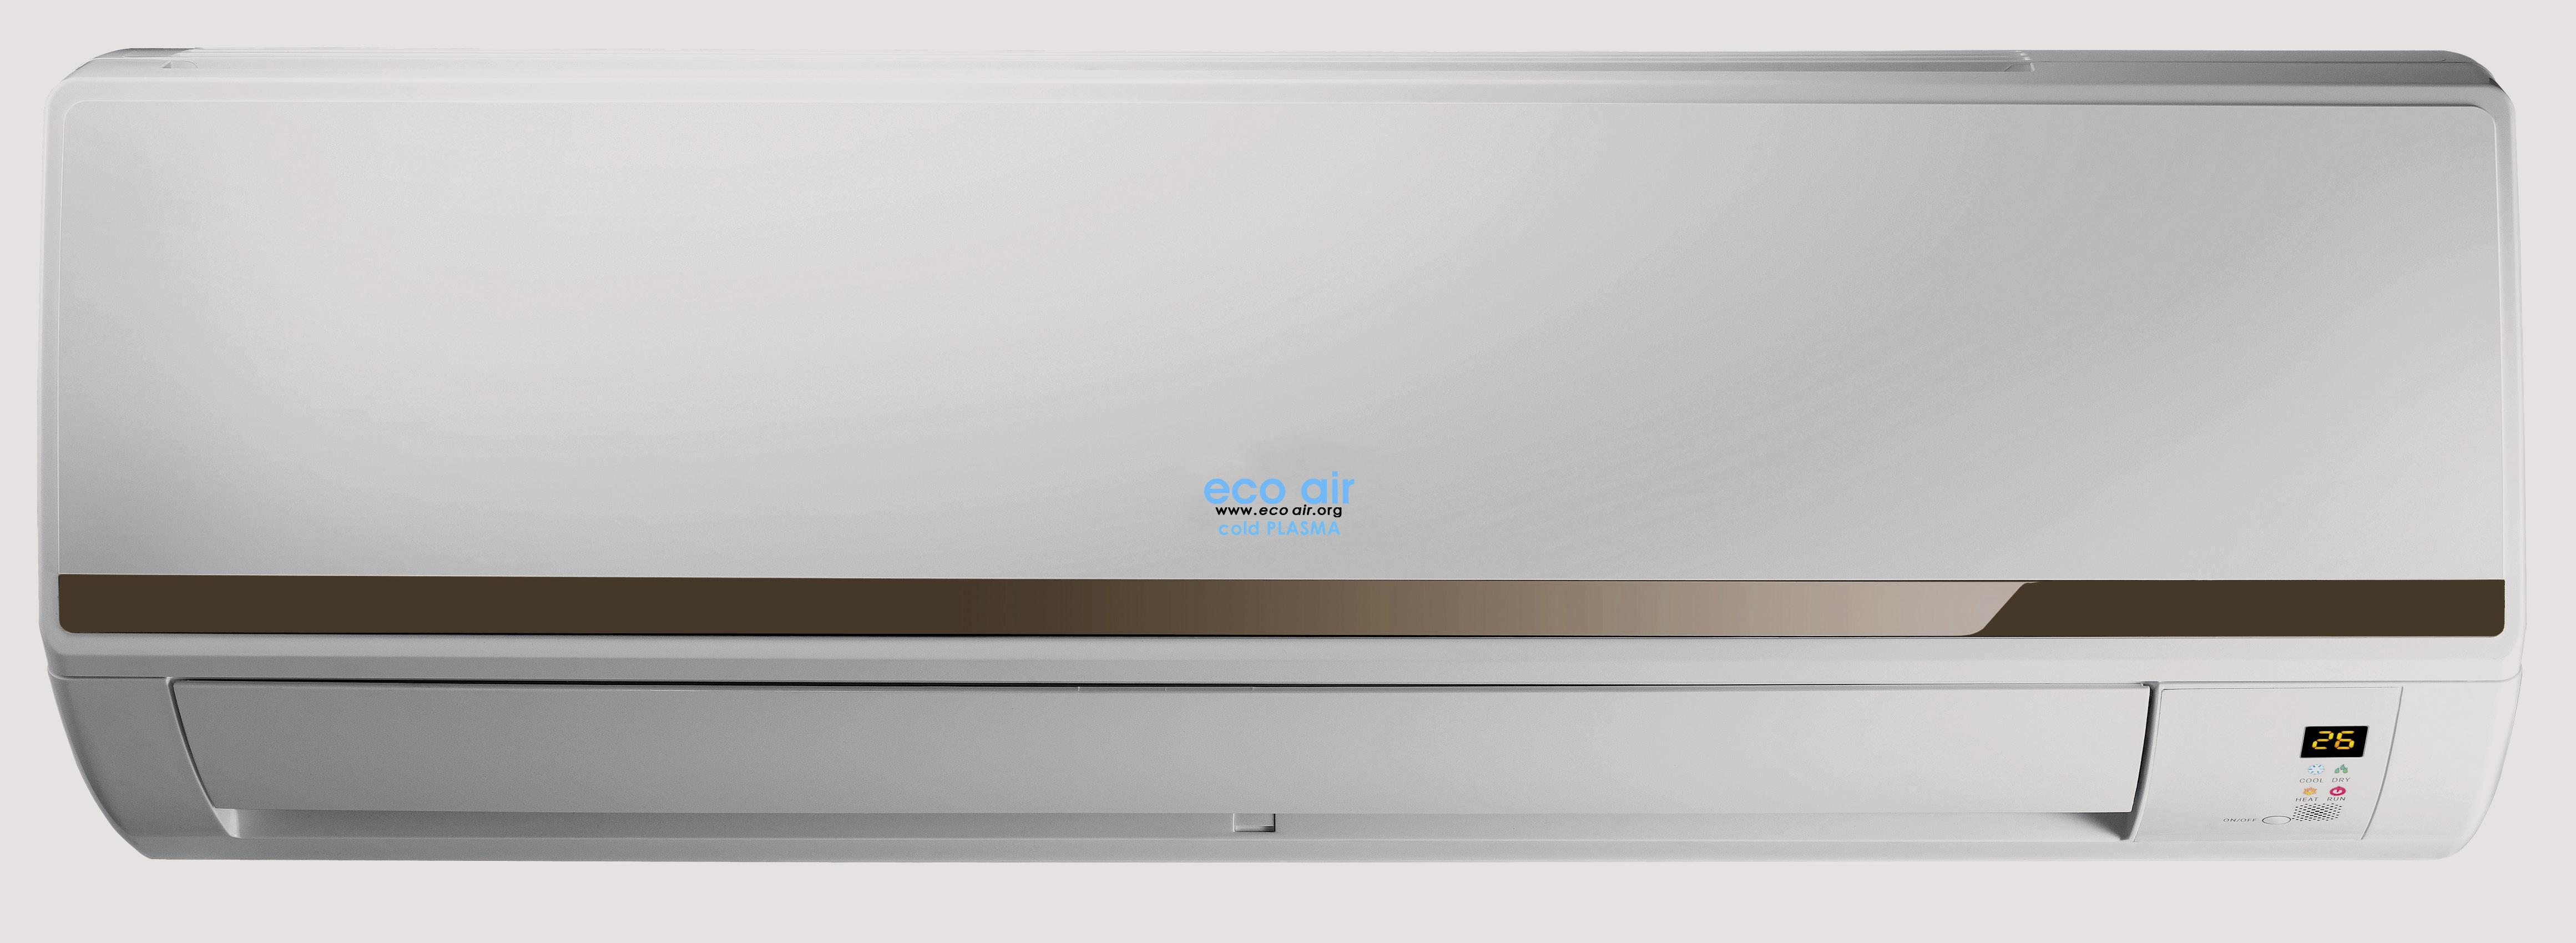 Air ECO1818SD Cold Plasma 5kw 18 000btu easy fit inverter split system  #426889